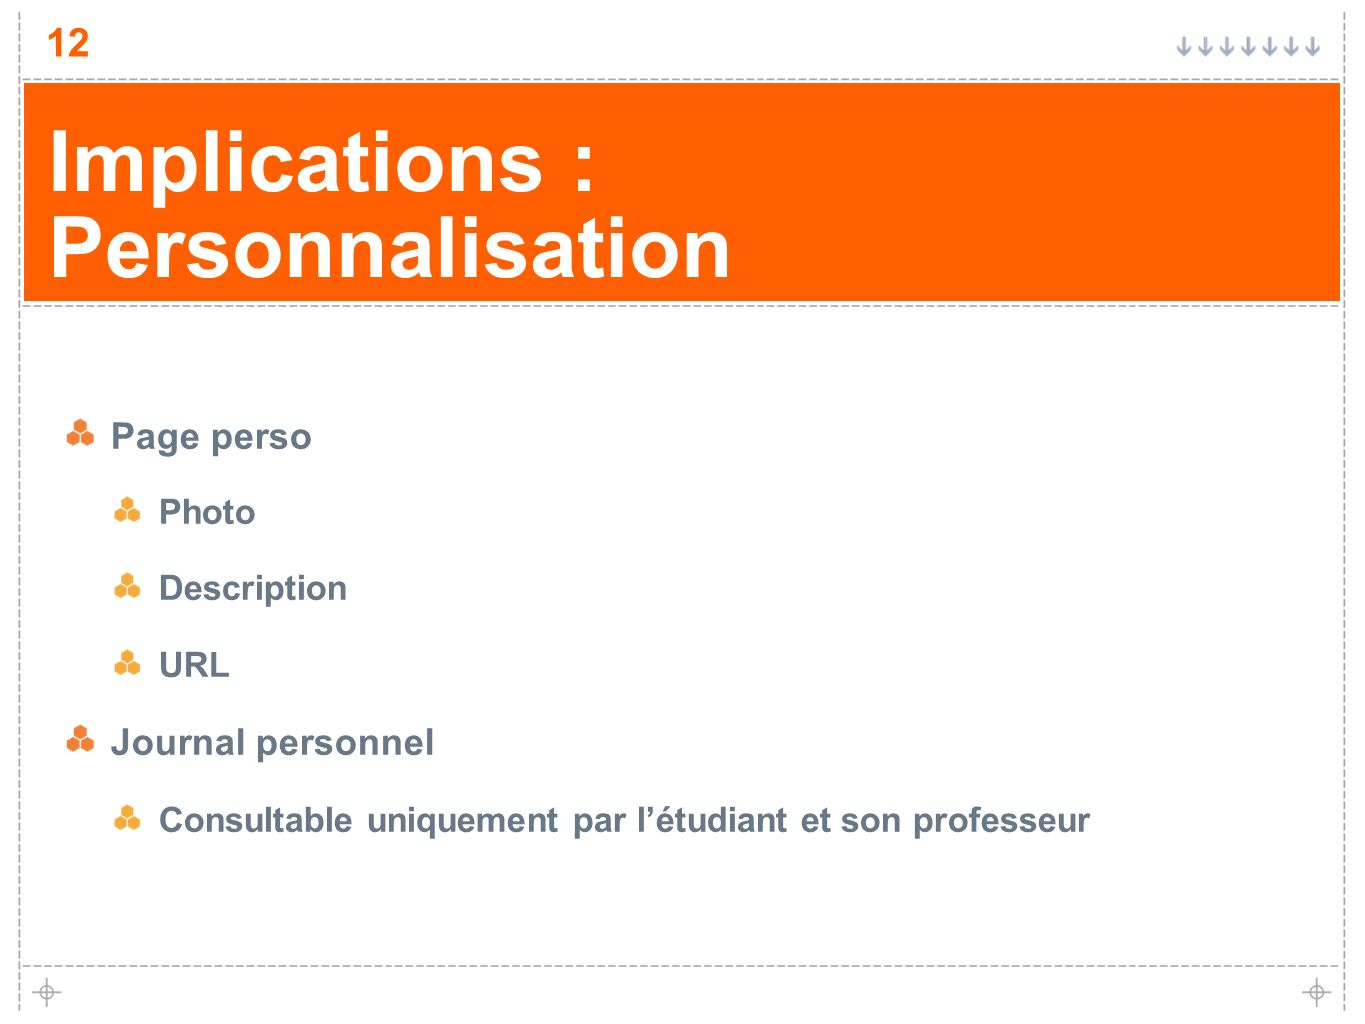 Implications : Personnalisation